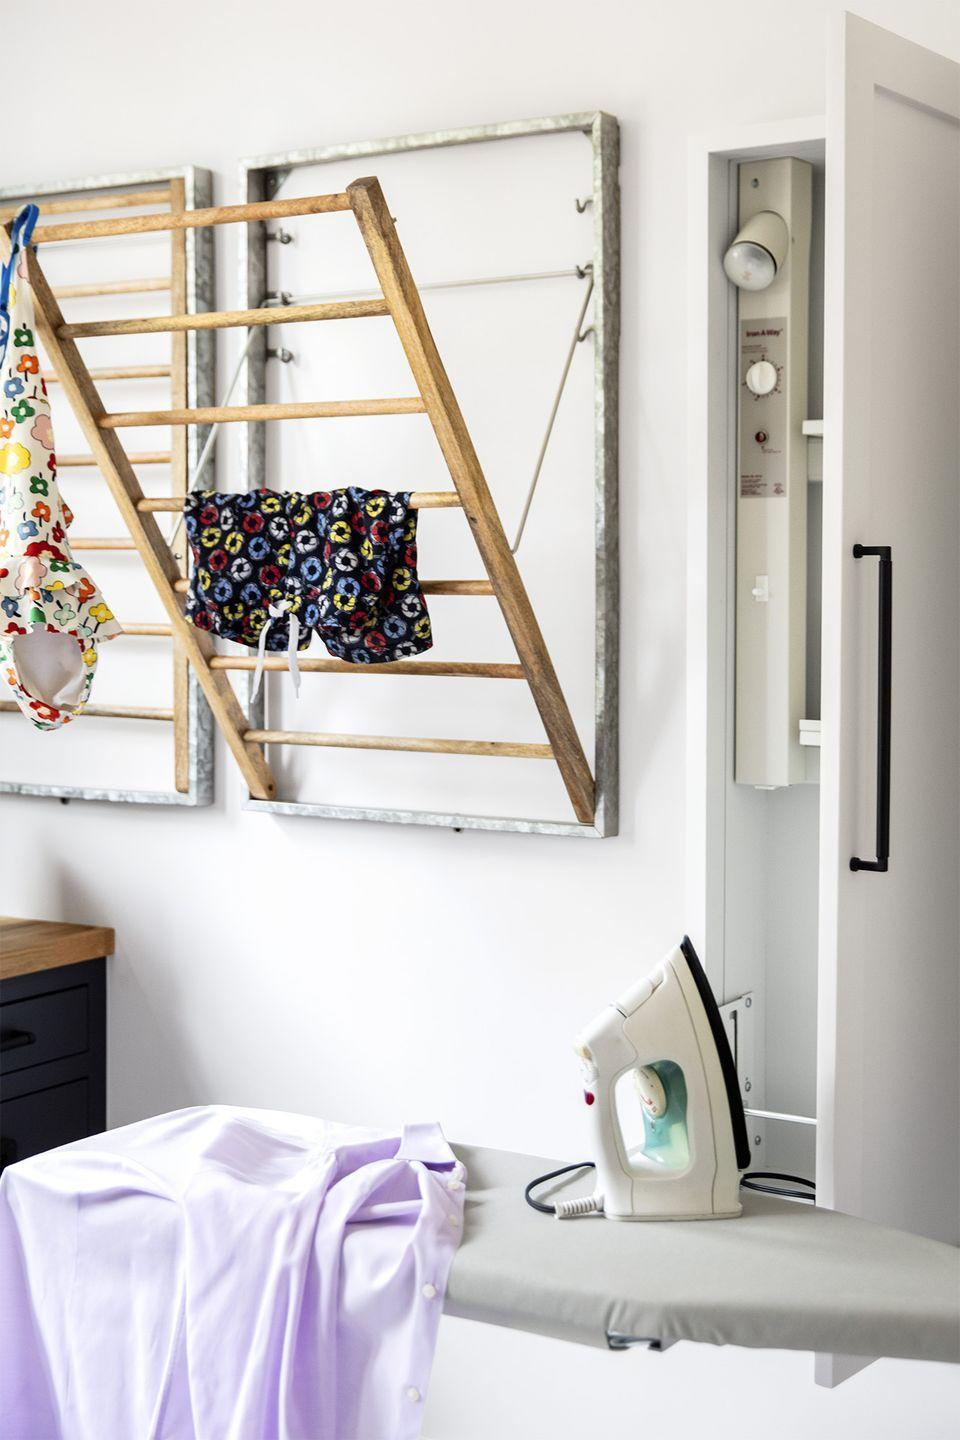 """<p>Boost your laundry room's functionality by mounting a few drying racks straight to the wall. When they're not in use, you can fold them up, so they don't get in the way of washing, drying and folding.</p><p><strong>RELATED: </strong><a href=""""https://www.goodhousekeeping.com/home/organizing/g25572553/laundry-room-ideas/"""" rel=""""nofollow noopener"""" target=""""_blank"""" data-ylk=""""slk:Clever Laundry Room Ideas"""" class=""""link rapid-noclick-resp"""">Clever Laundry Room Ideas </a></p>"""